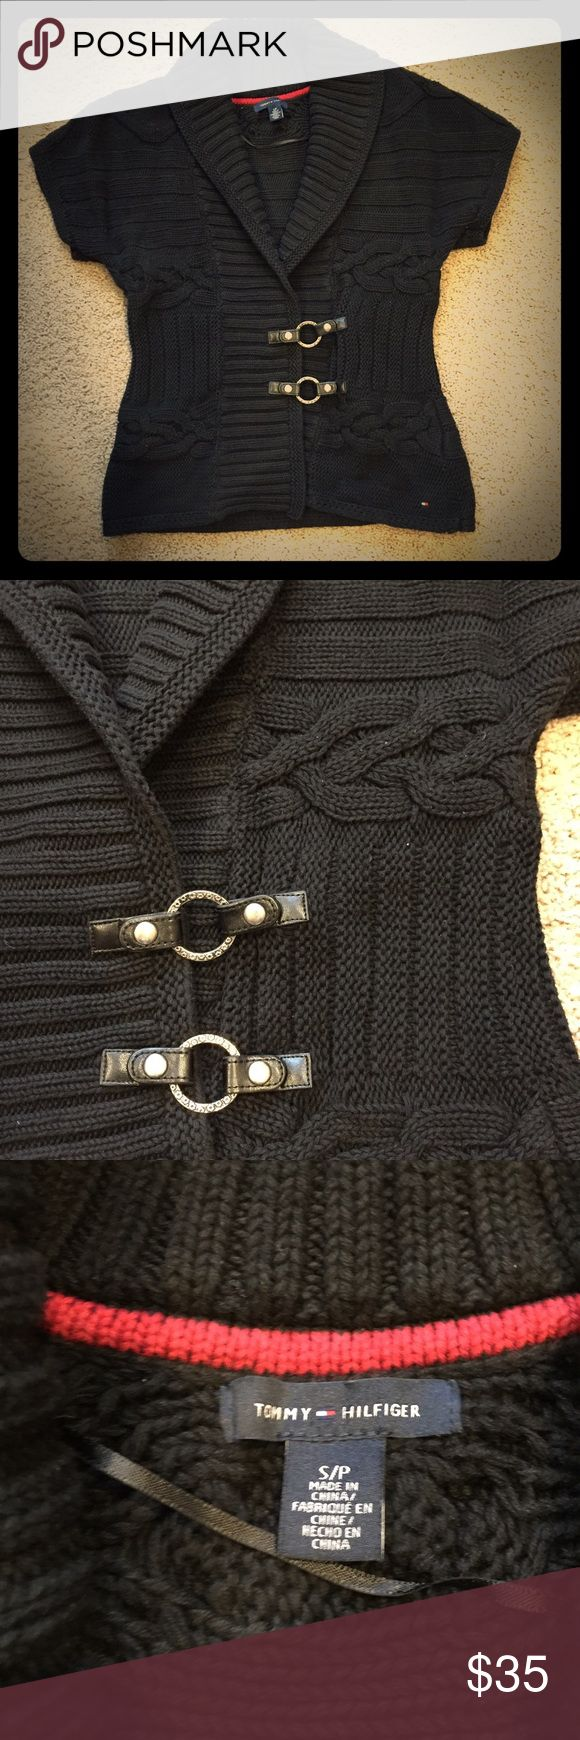 Black Tommy Hilfiger sweater Black Tommy Hilfiger sweater with silver accents!  This sweater looks great with any color of top underneath and is in excellent condition! Tommy Hilfiger Sweaters